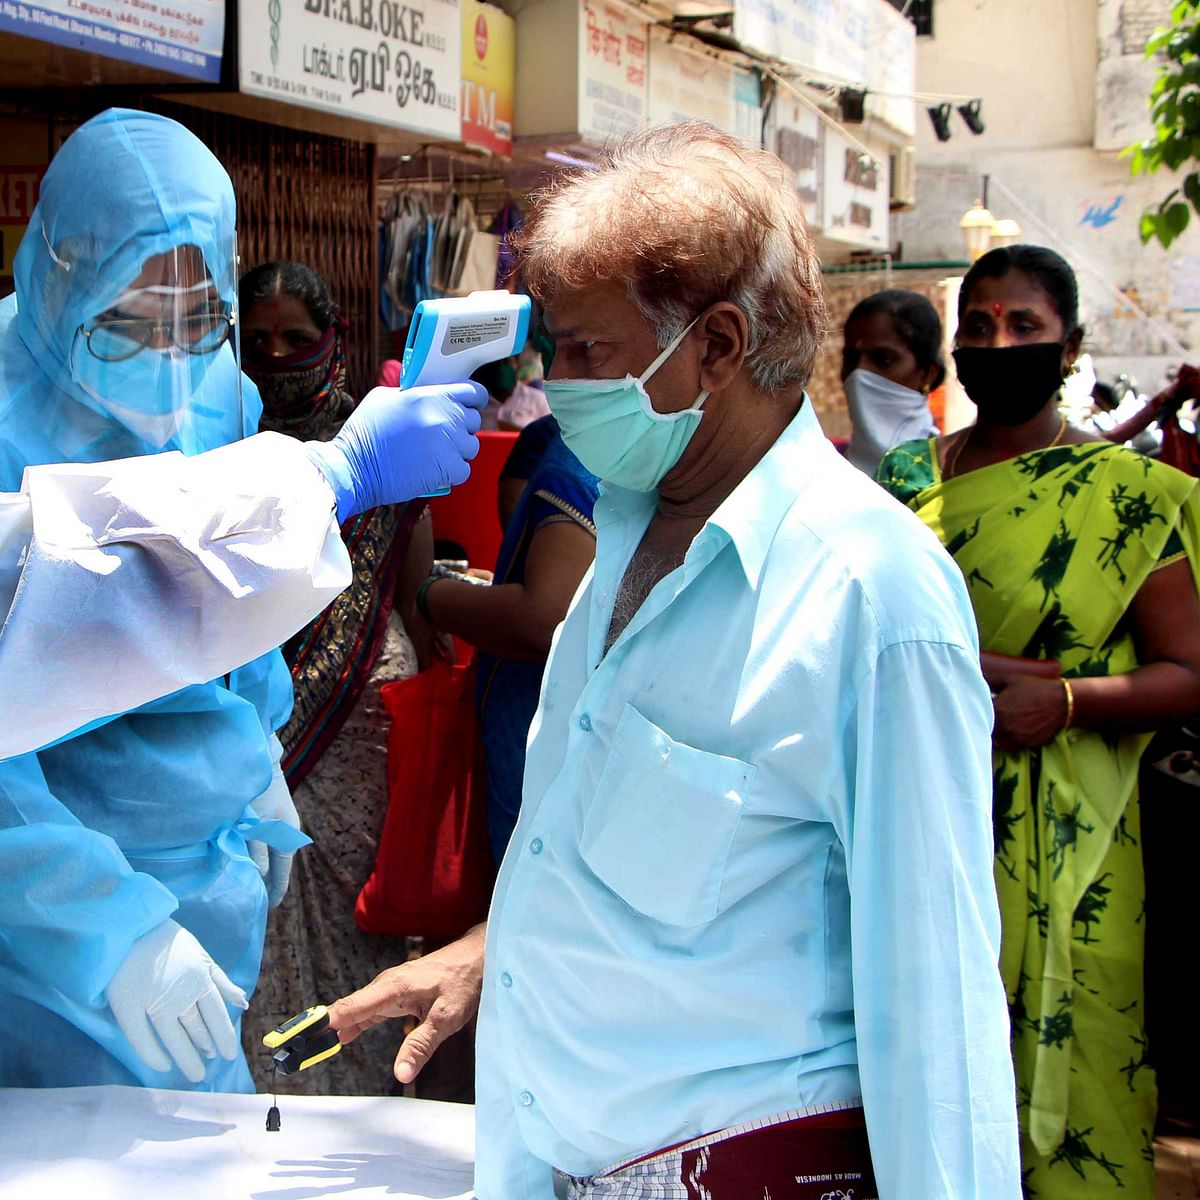 Coronavirus in Maharashtra: State reports over 10,000 new cases, Mumbai record 1,173